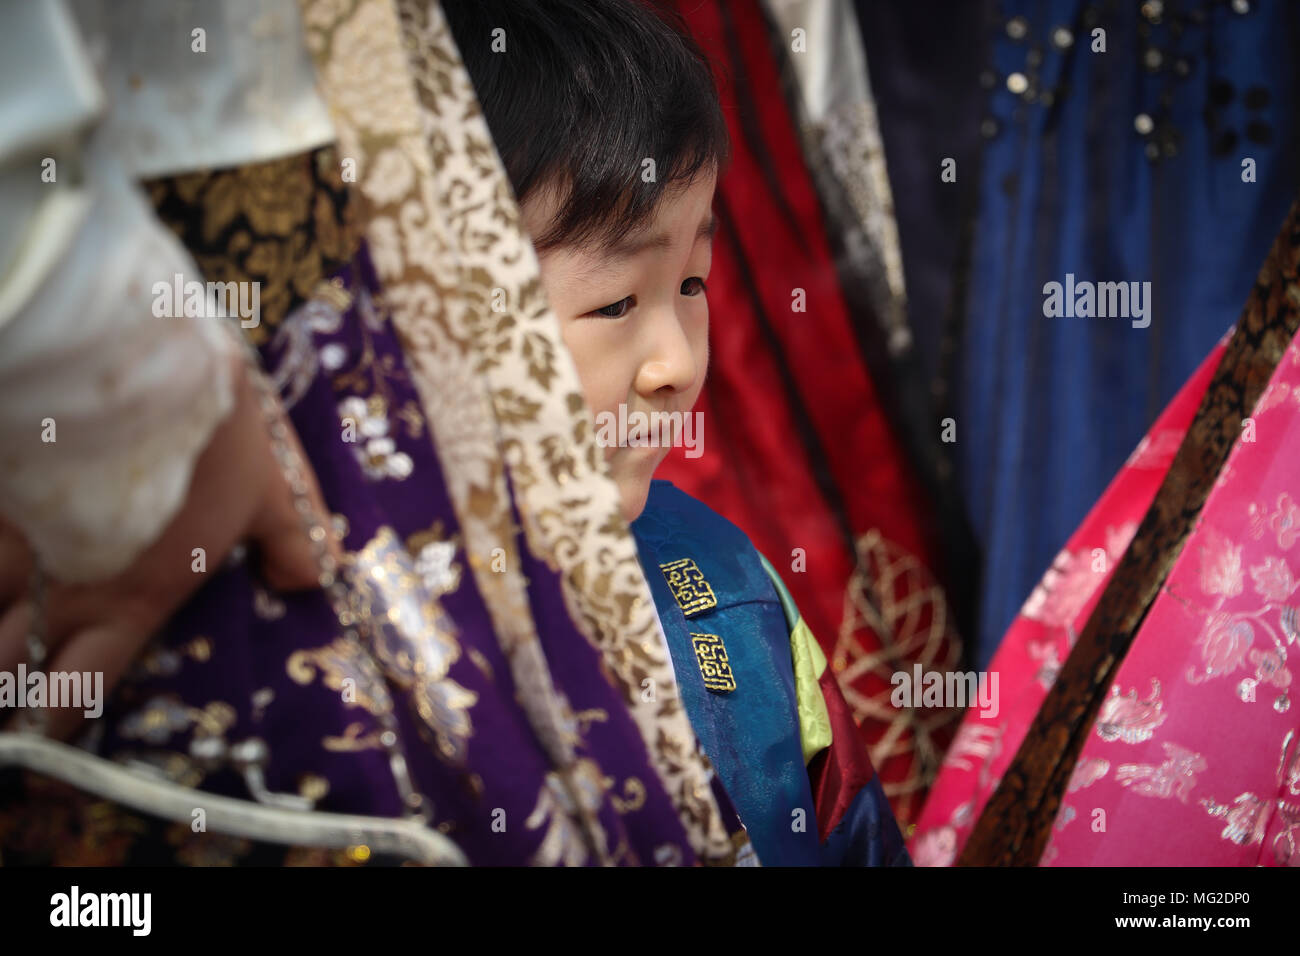 Little Korean boy peeks out from behind his mother's skirt, surrounded by other brilliantly colored hanbok skirts: red, pink, blue, purple, gold. - Stock Image